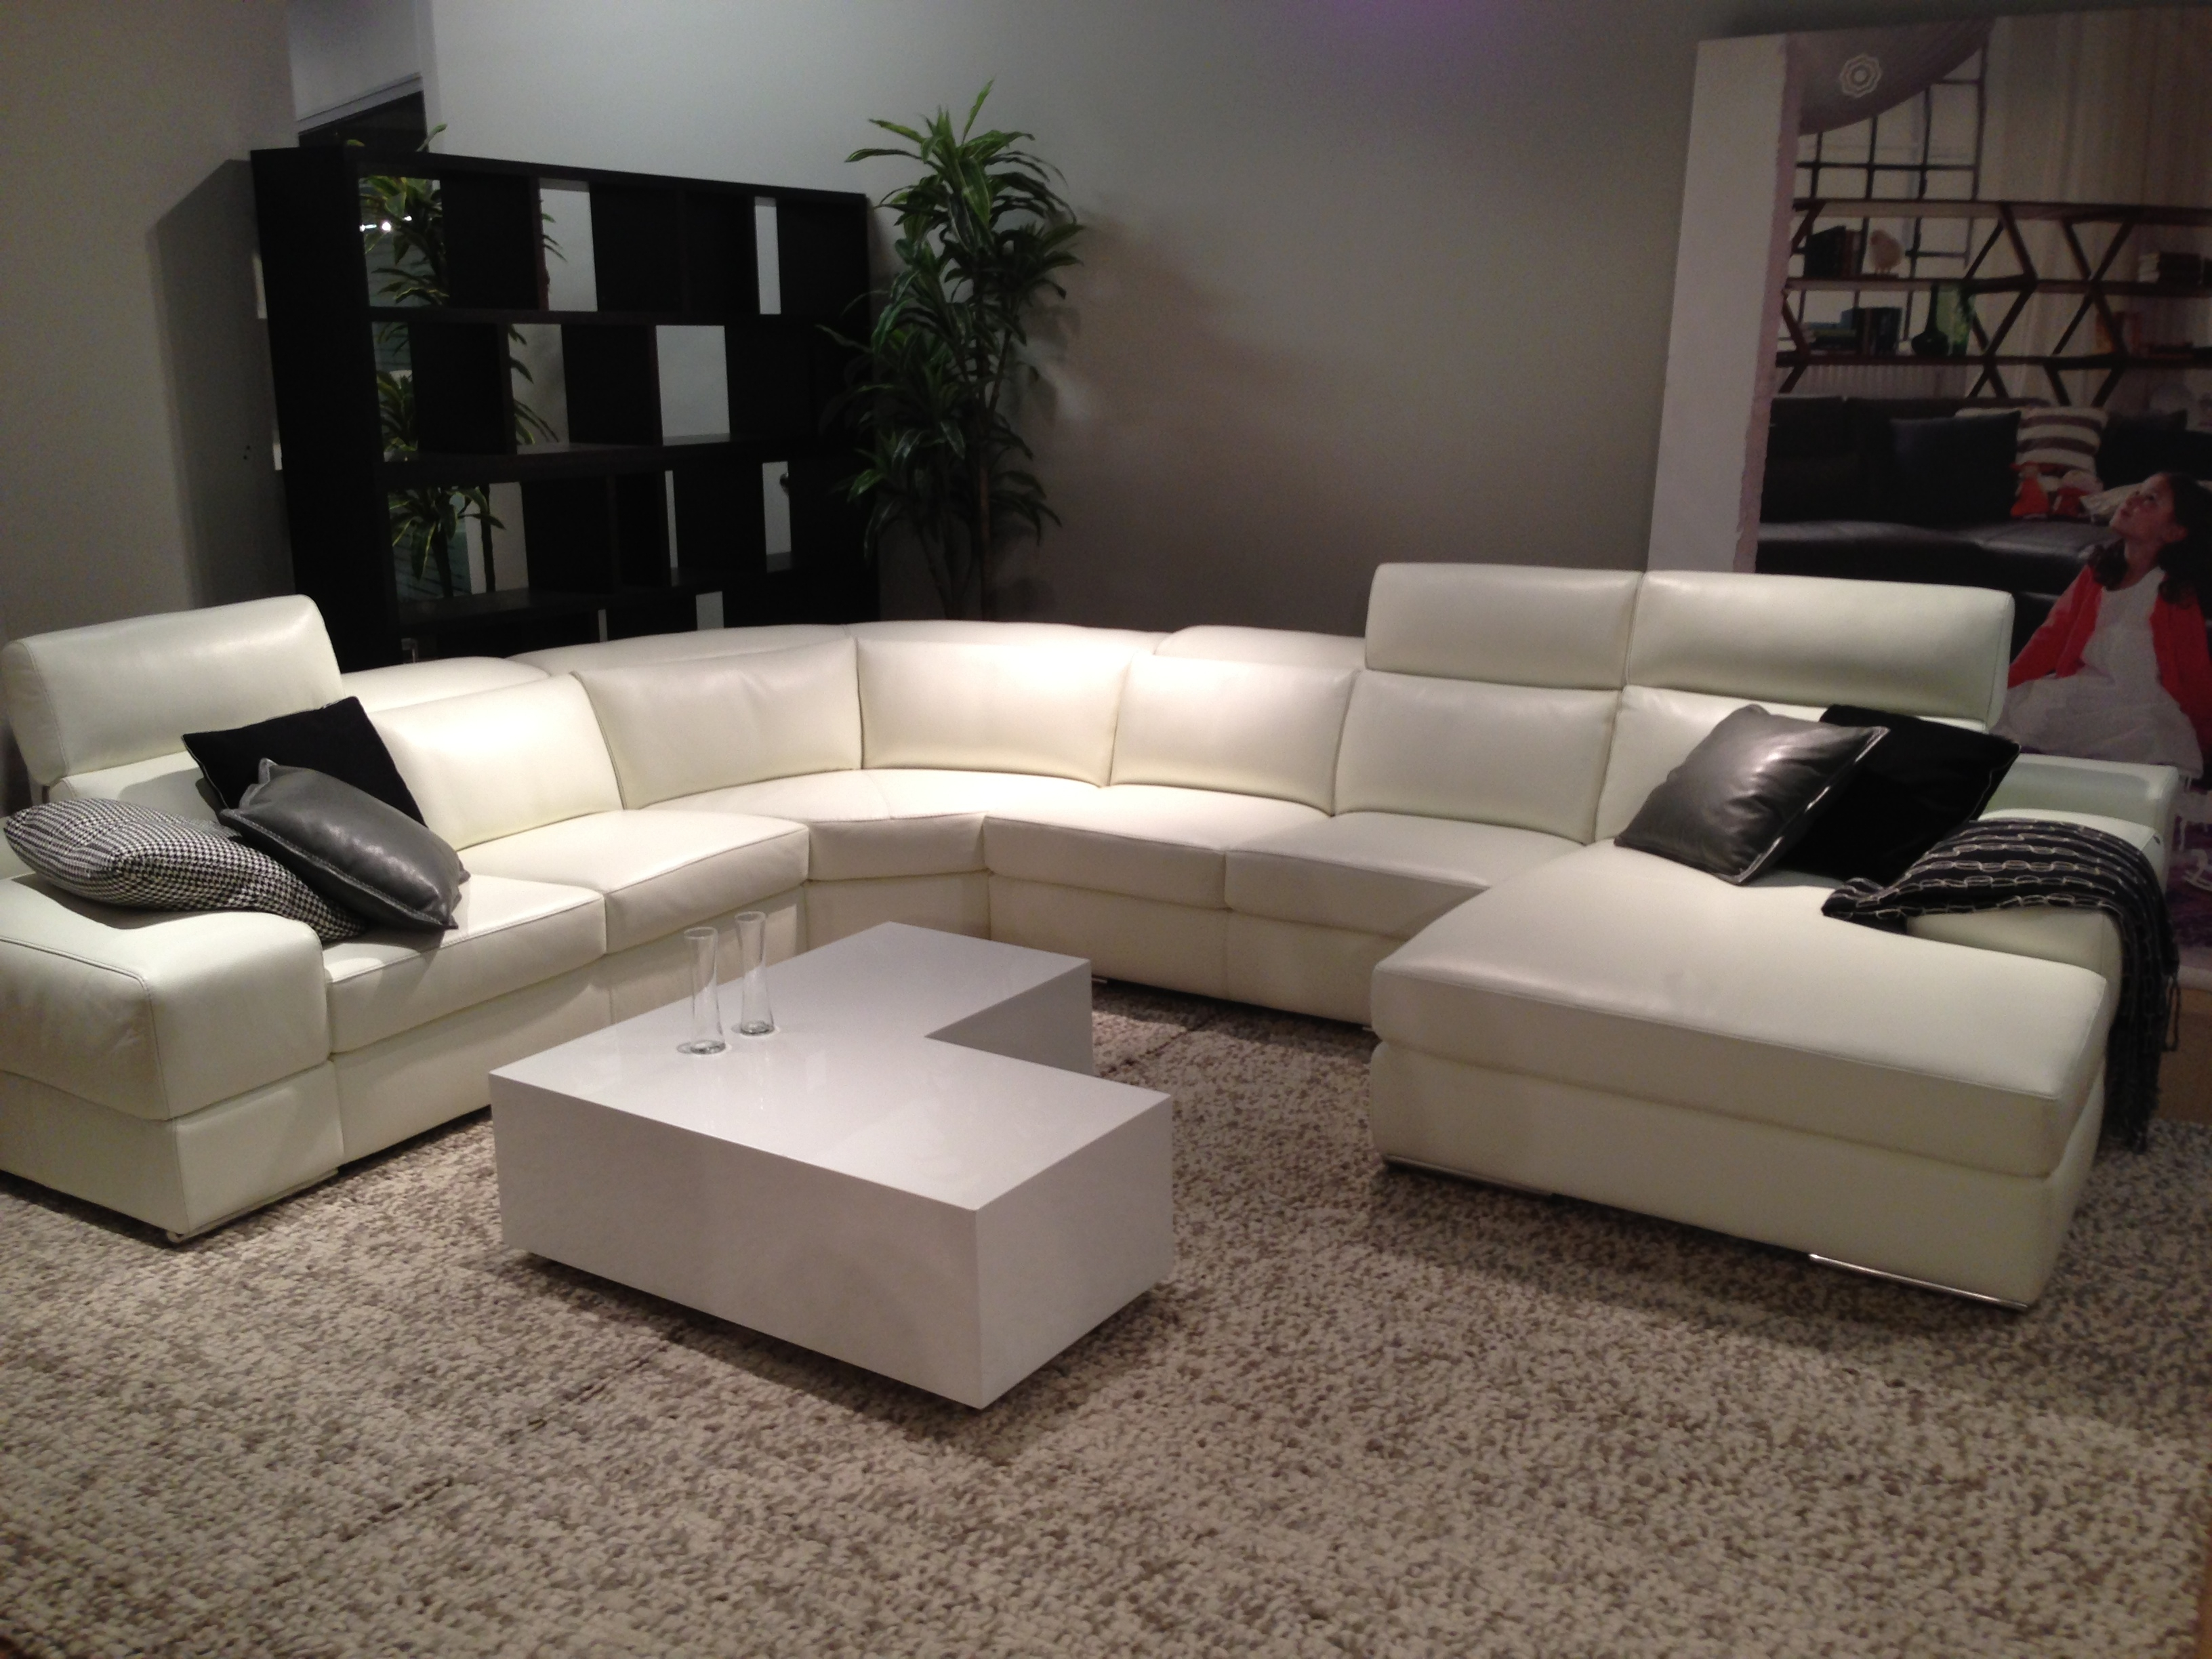 Modern White Leather Sectional Htl Portland Oregon 1,632×1,224 Pertaining To Portland Oregon Sectional Sofas (Image 5 of 10)